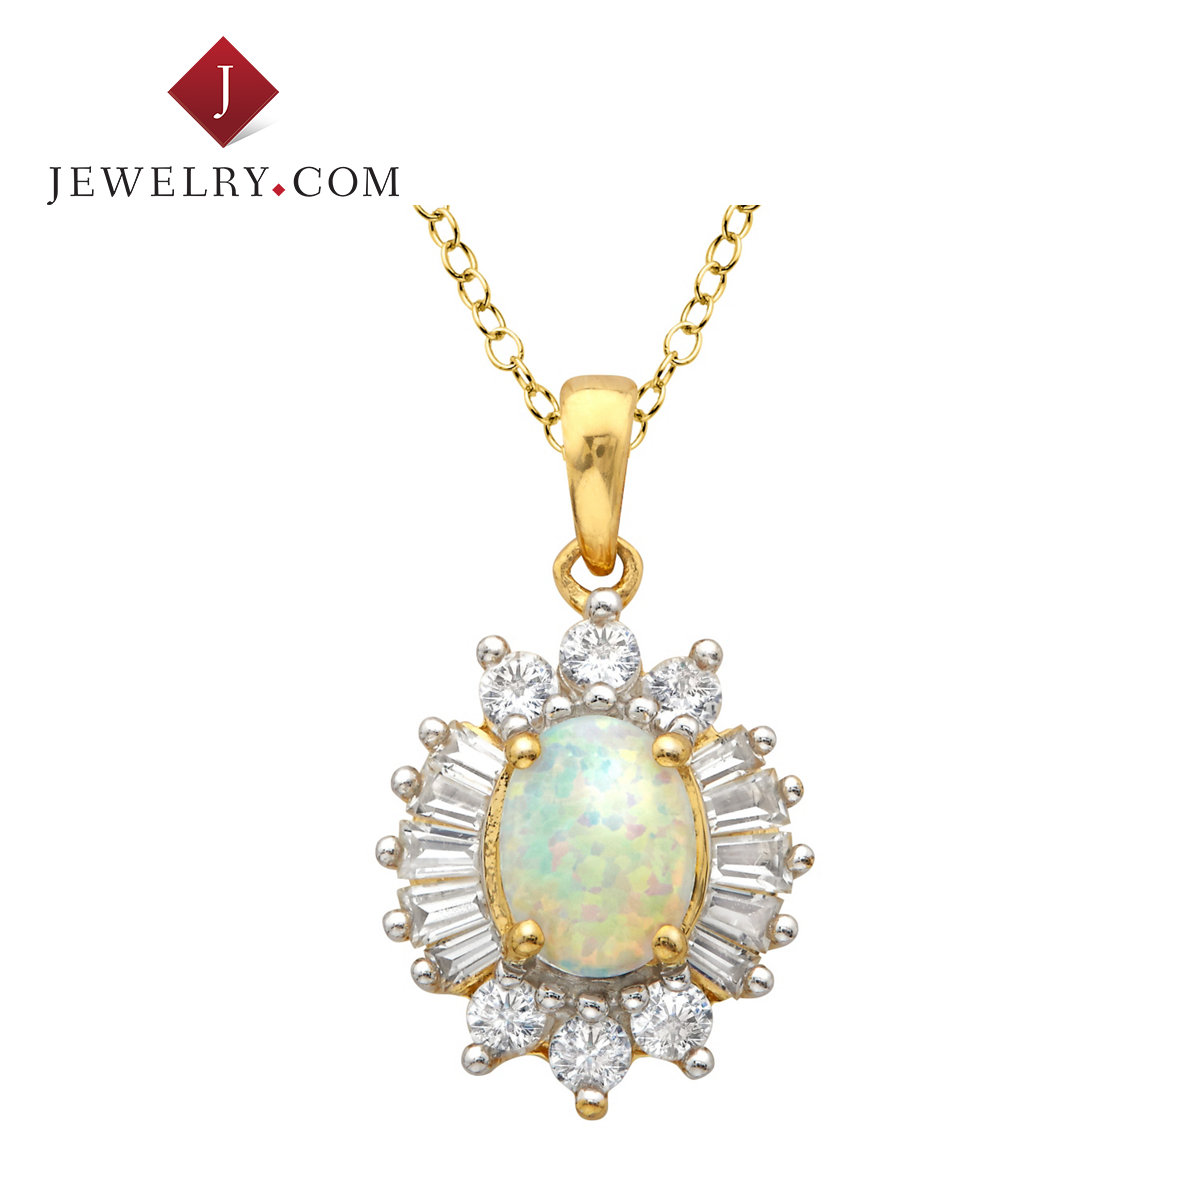 Jewelry.com official silver 925 k gold plated elegant charm exquisite opal white sapphire pendant female models